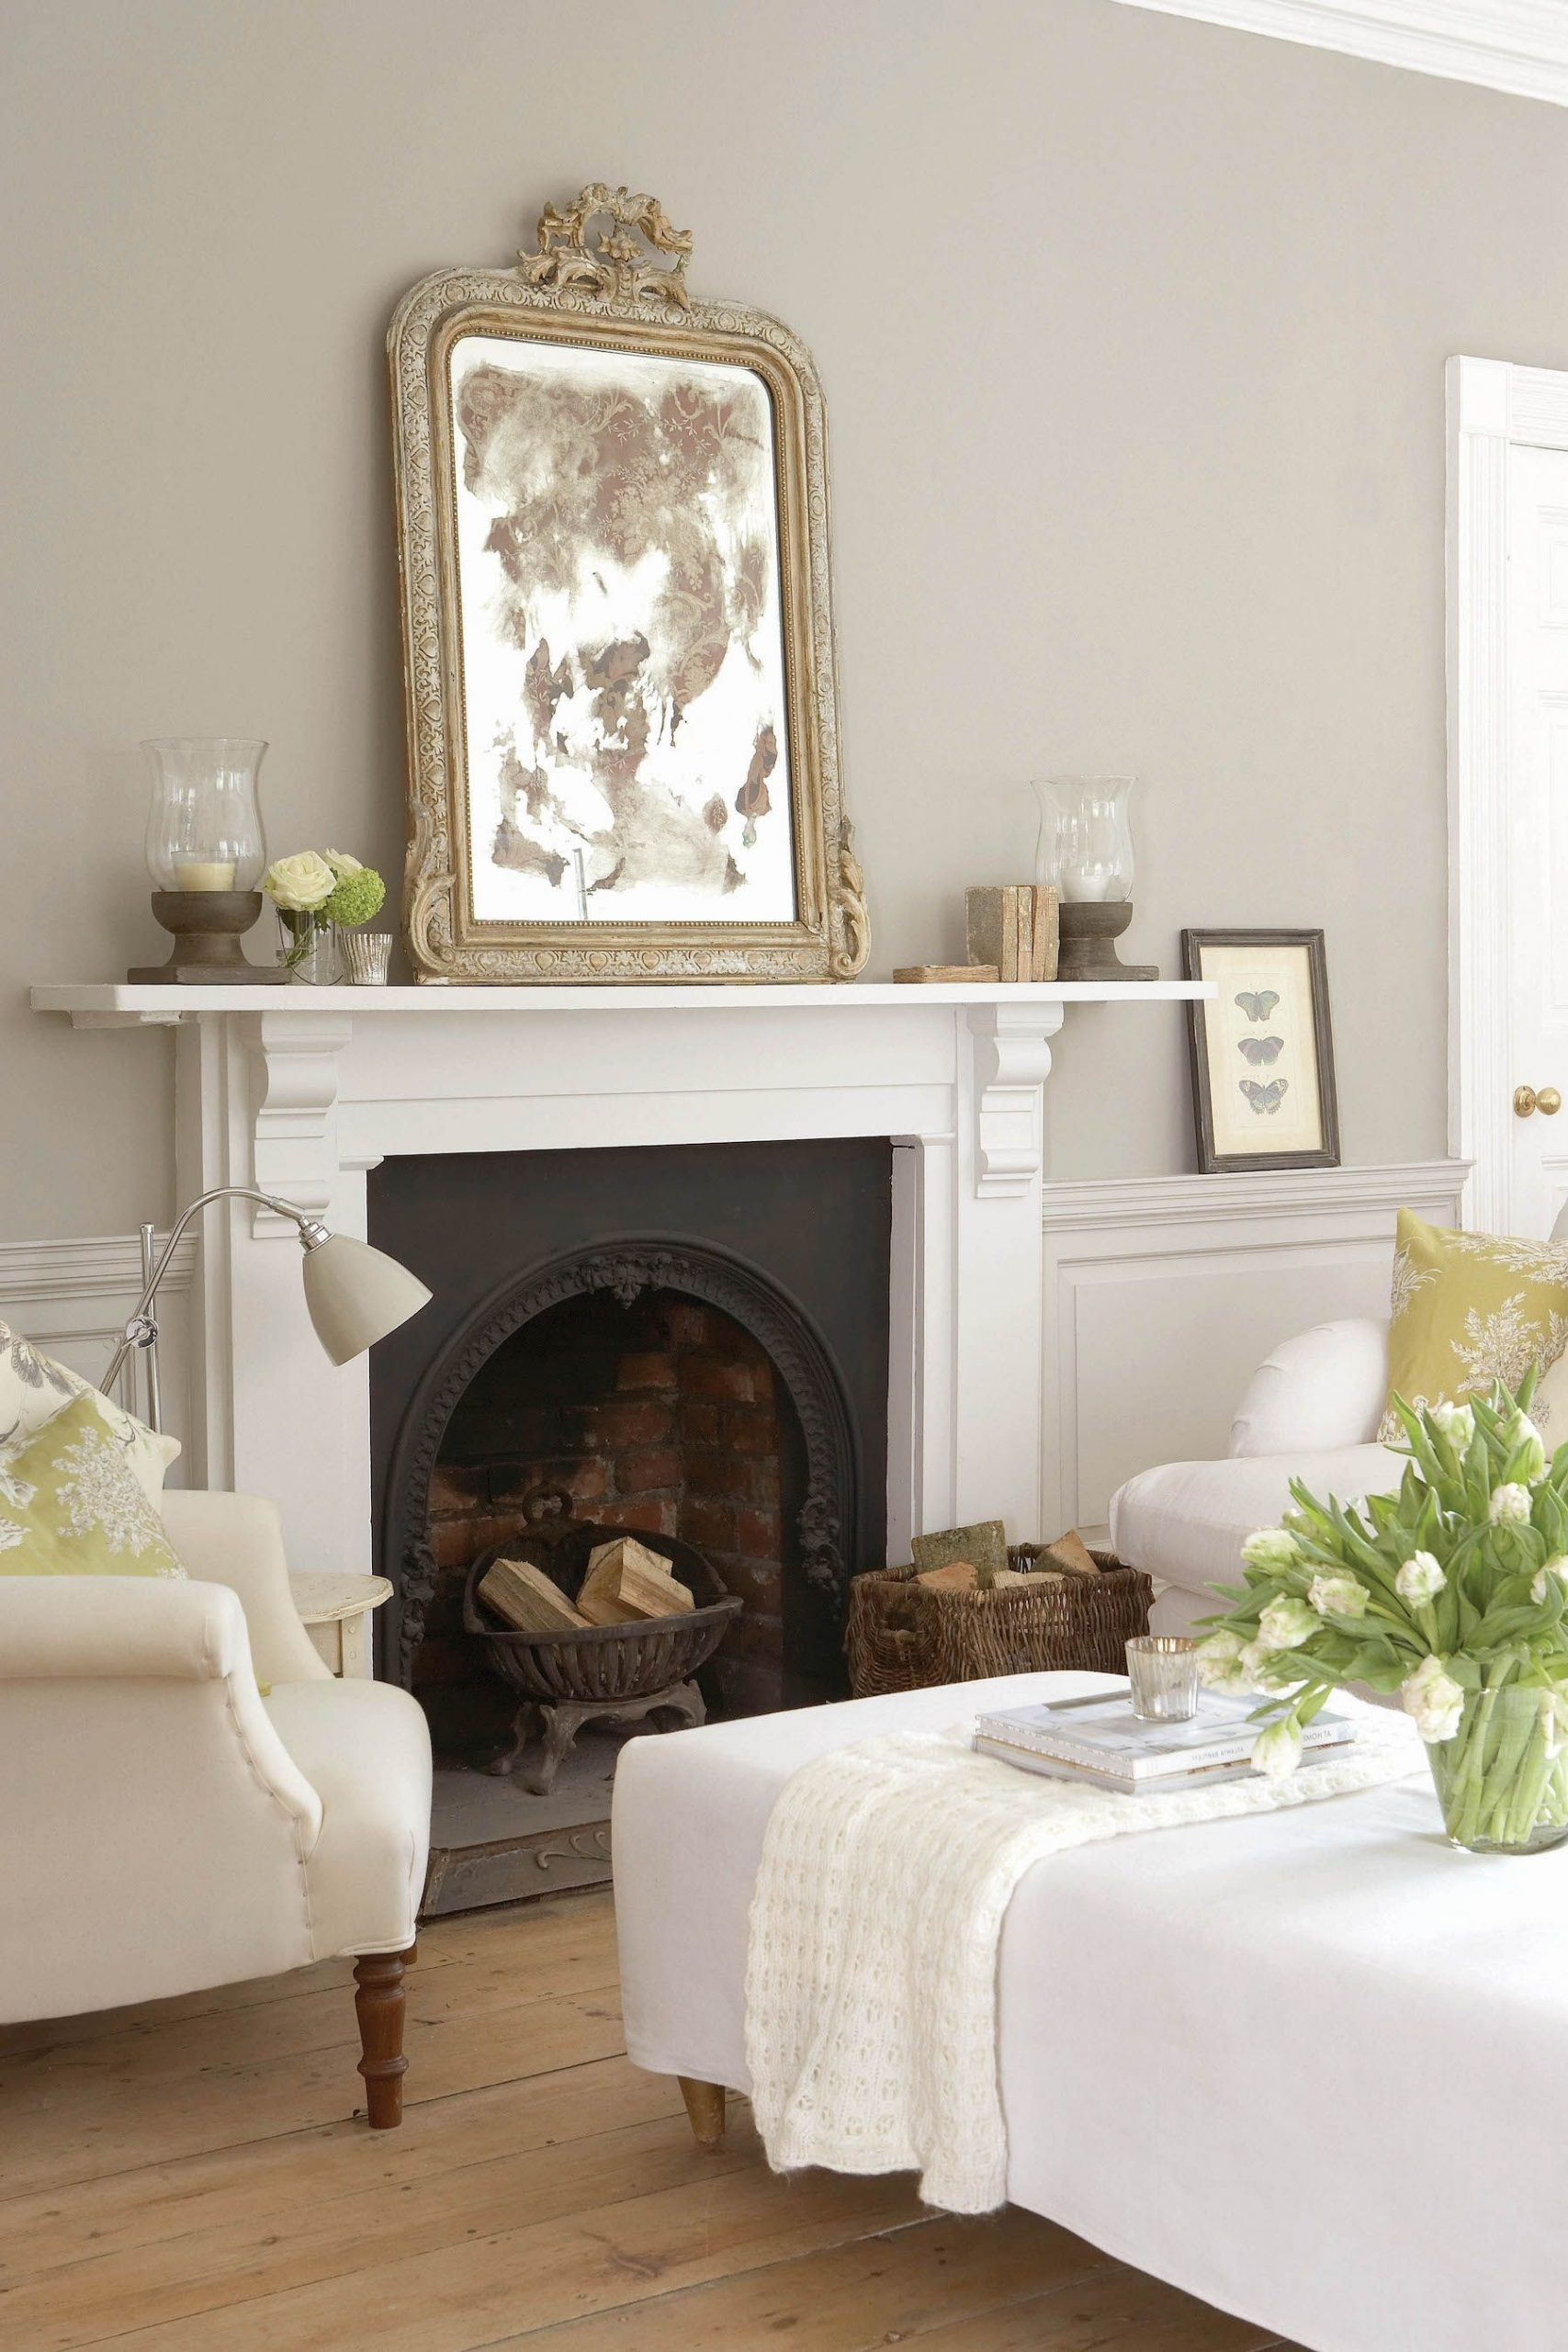 19 Grey Living Room Ideas Grey Living Room Small Living Room With Chimney Breast